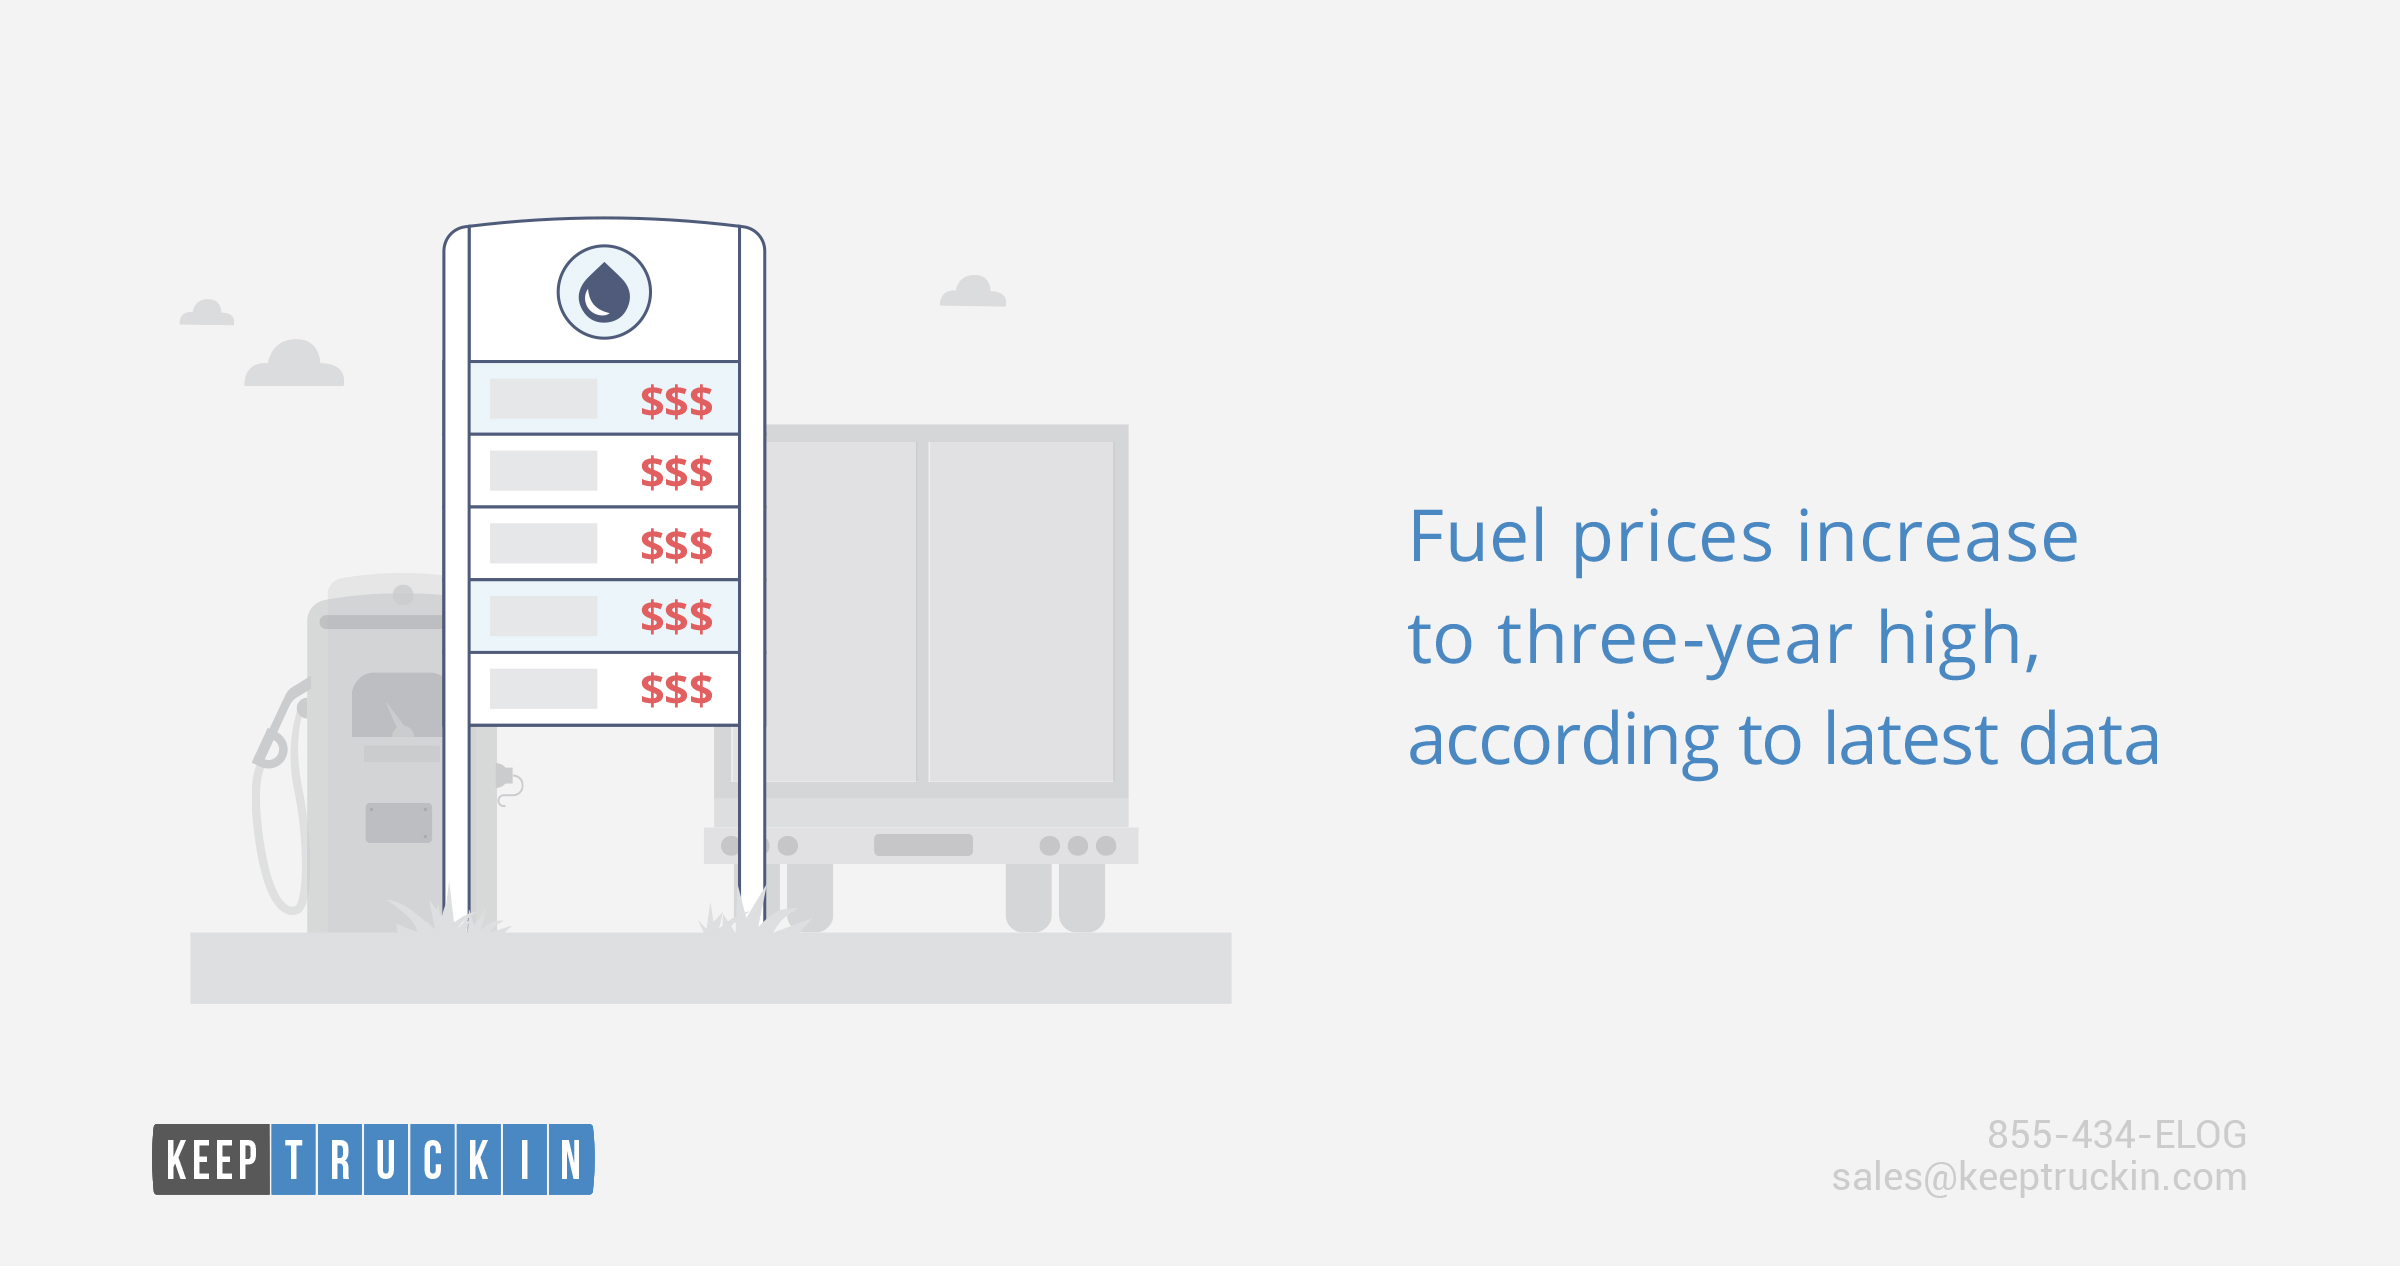 Fuel prices increase to three-year high